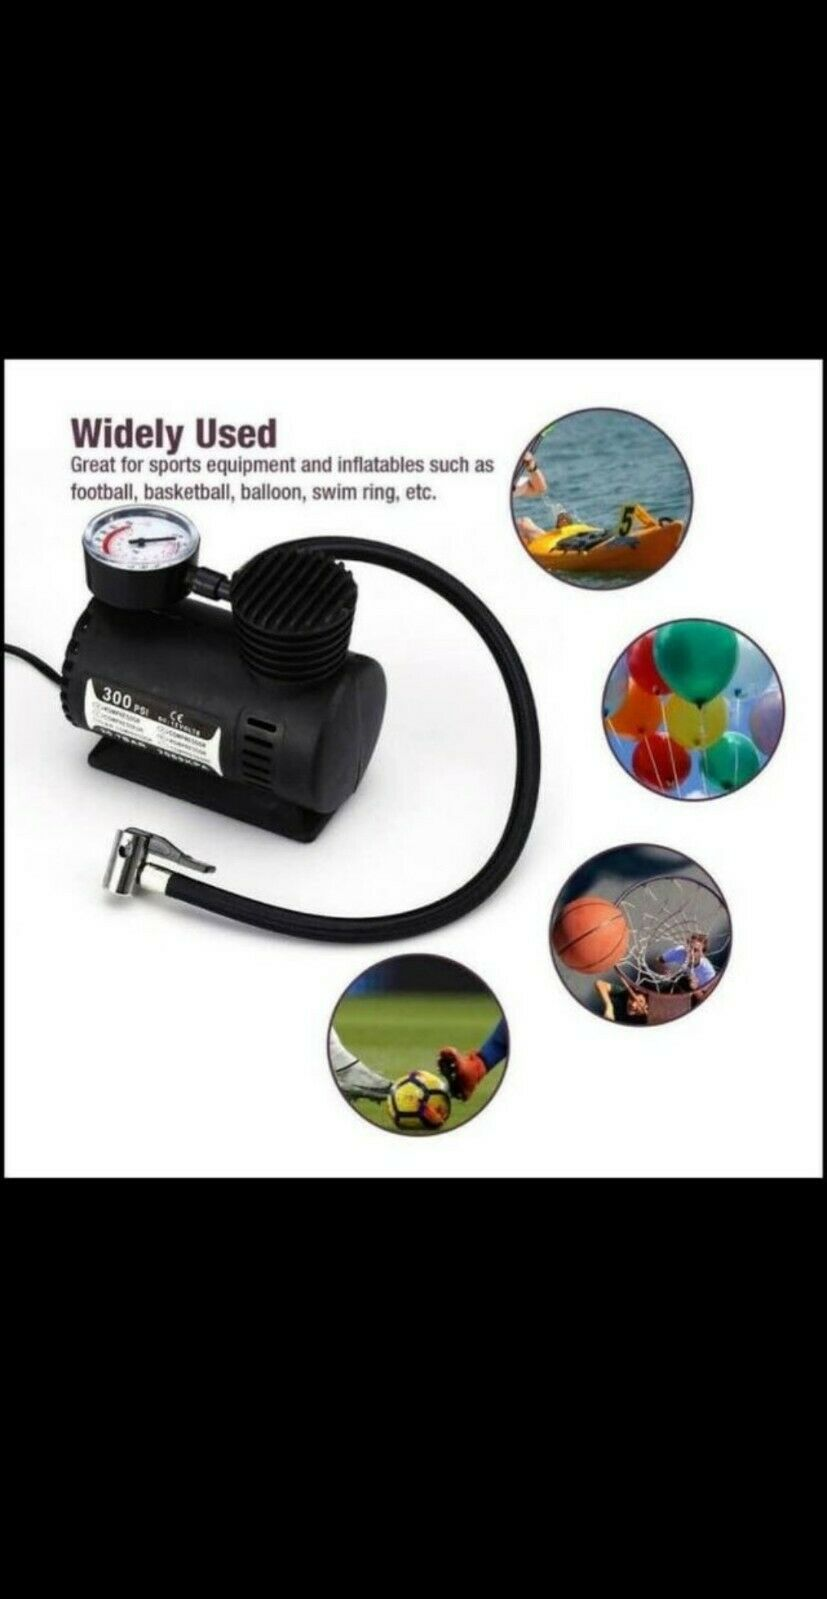 Car Electric Air Pump 300PSI Air Compressor Portable Tire Inflator For Car Bike. Available Now for 13.99